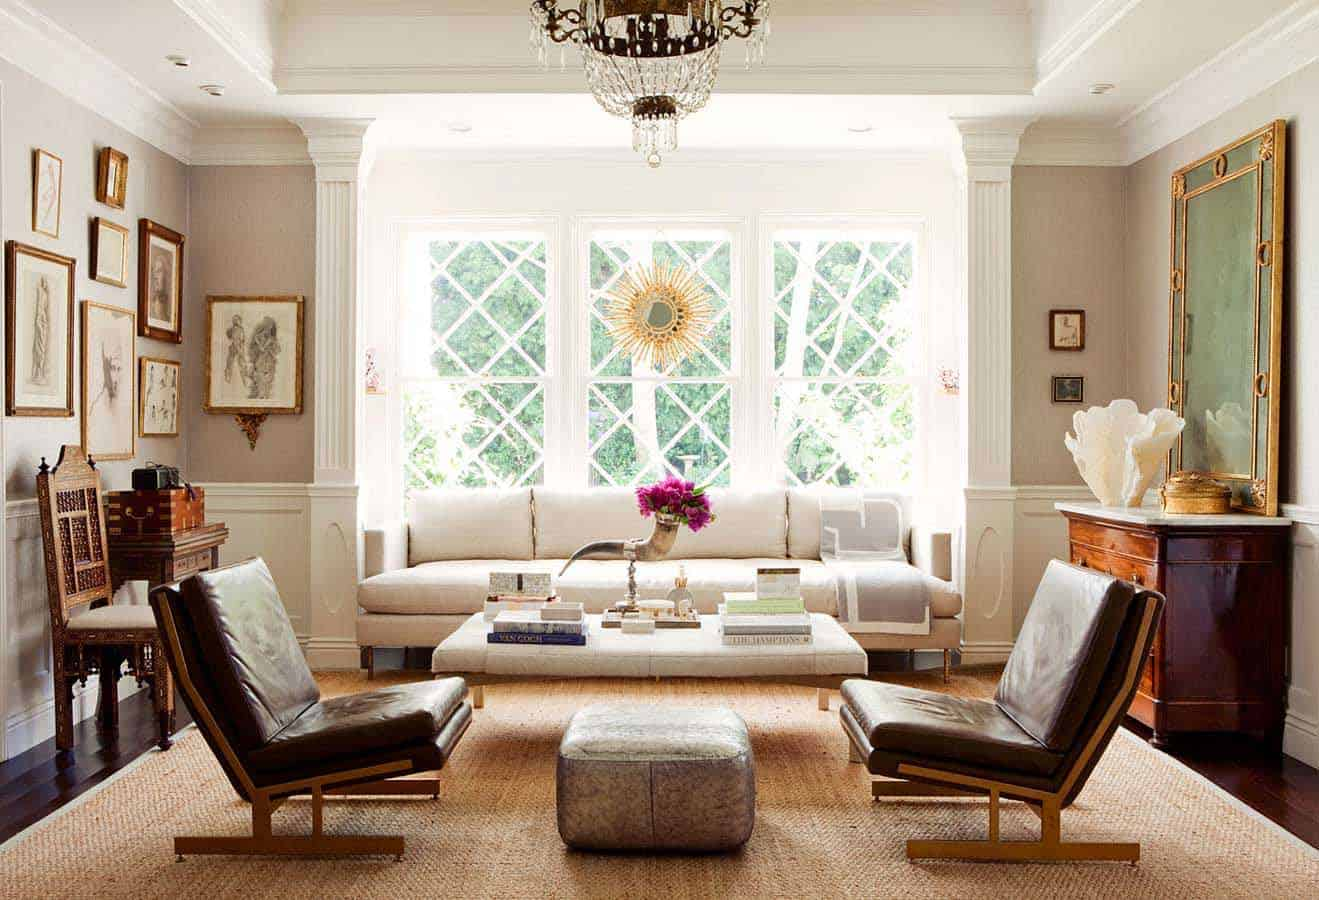 Arranging living room furniture kristina wolf design How to arrange a living room with 3 couches